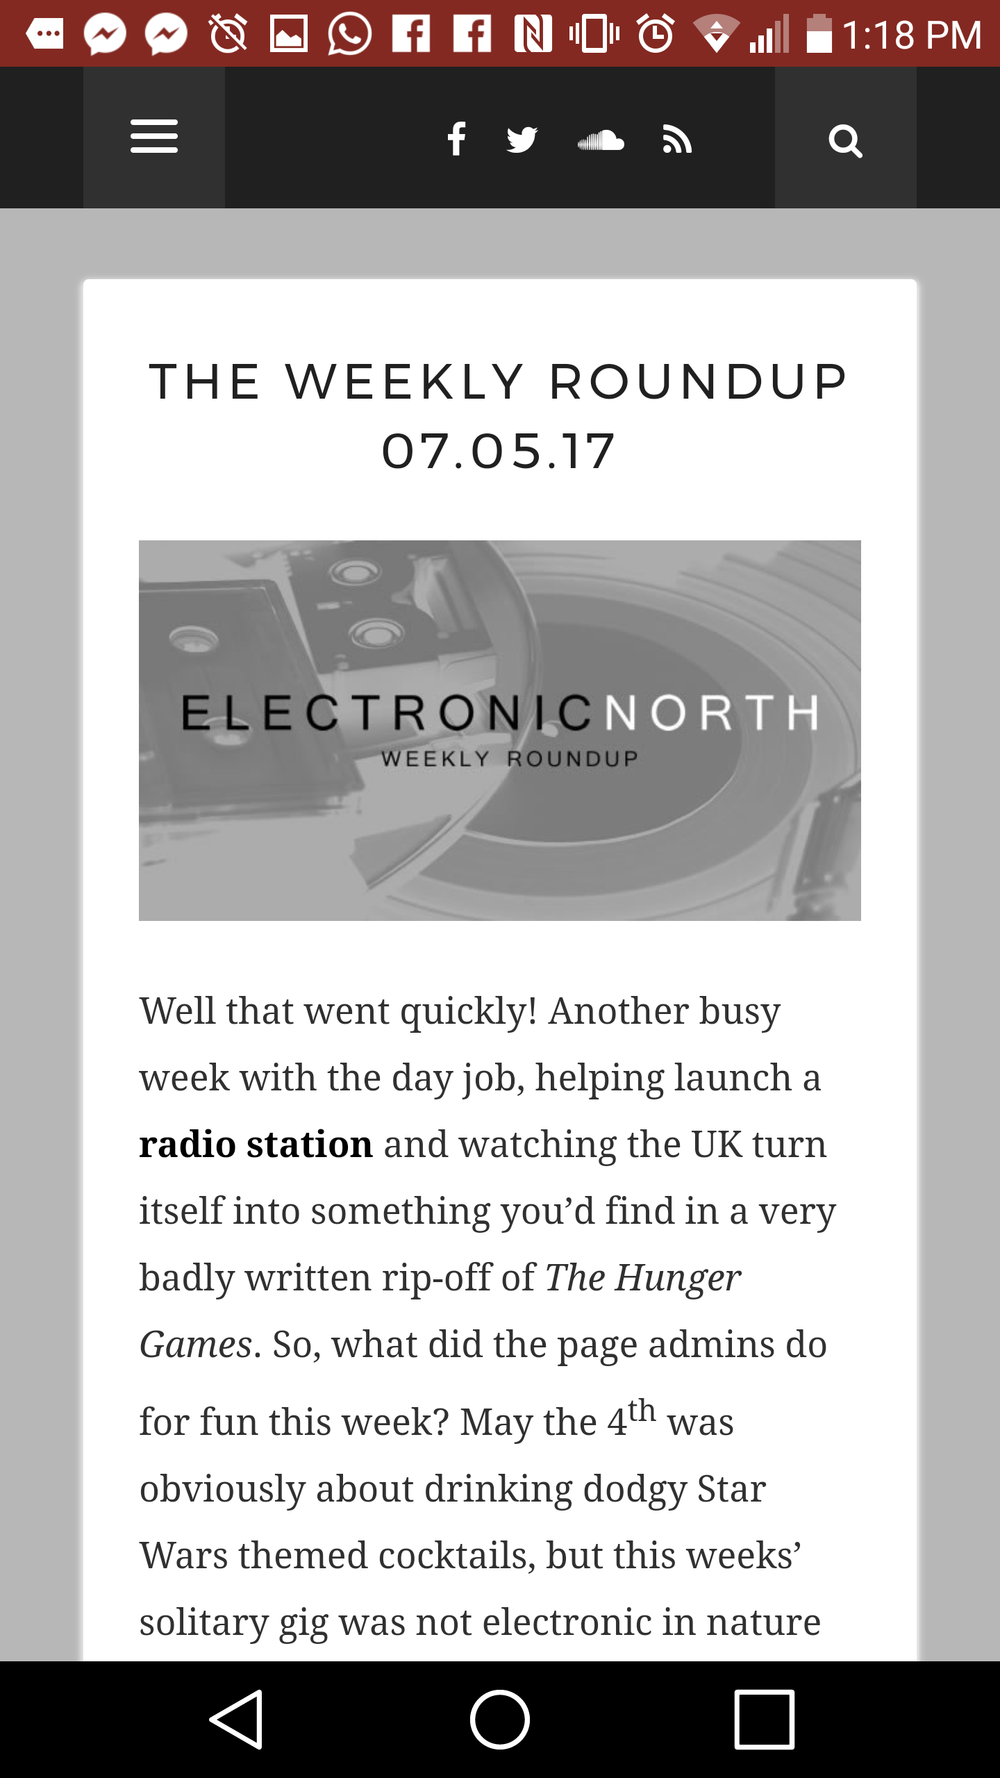 Electronic North Weekly Round Up